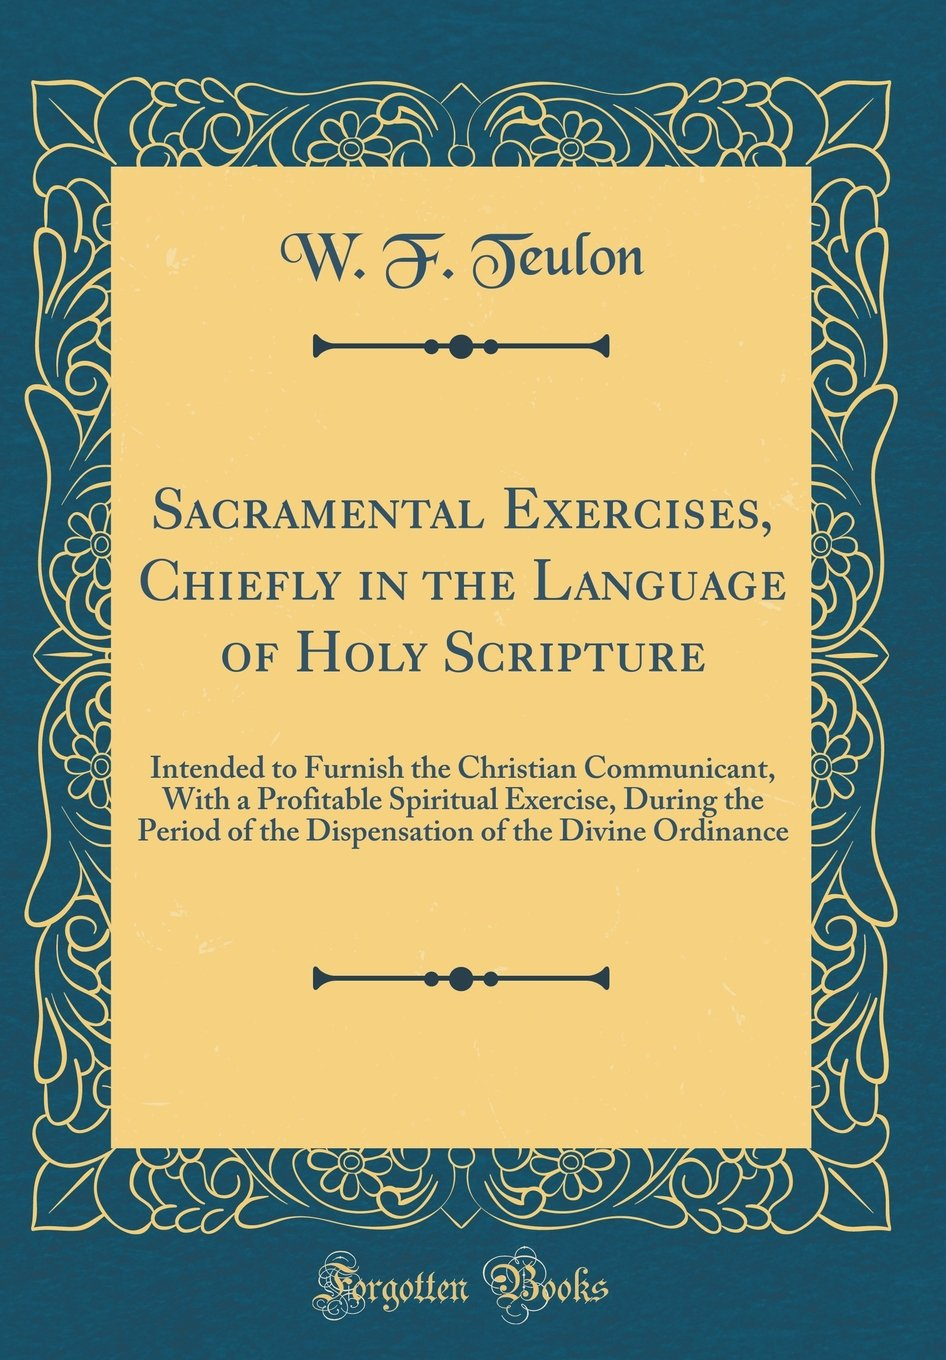 Sacramental Exercises, Chiefly in the Language of Holy Scripture: Intended to Furnish the Christian Communicant, With a Profitable Spiritual Exercise, ... of the Divine Ordinance (Classic Reprint) by Forgotten Books